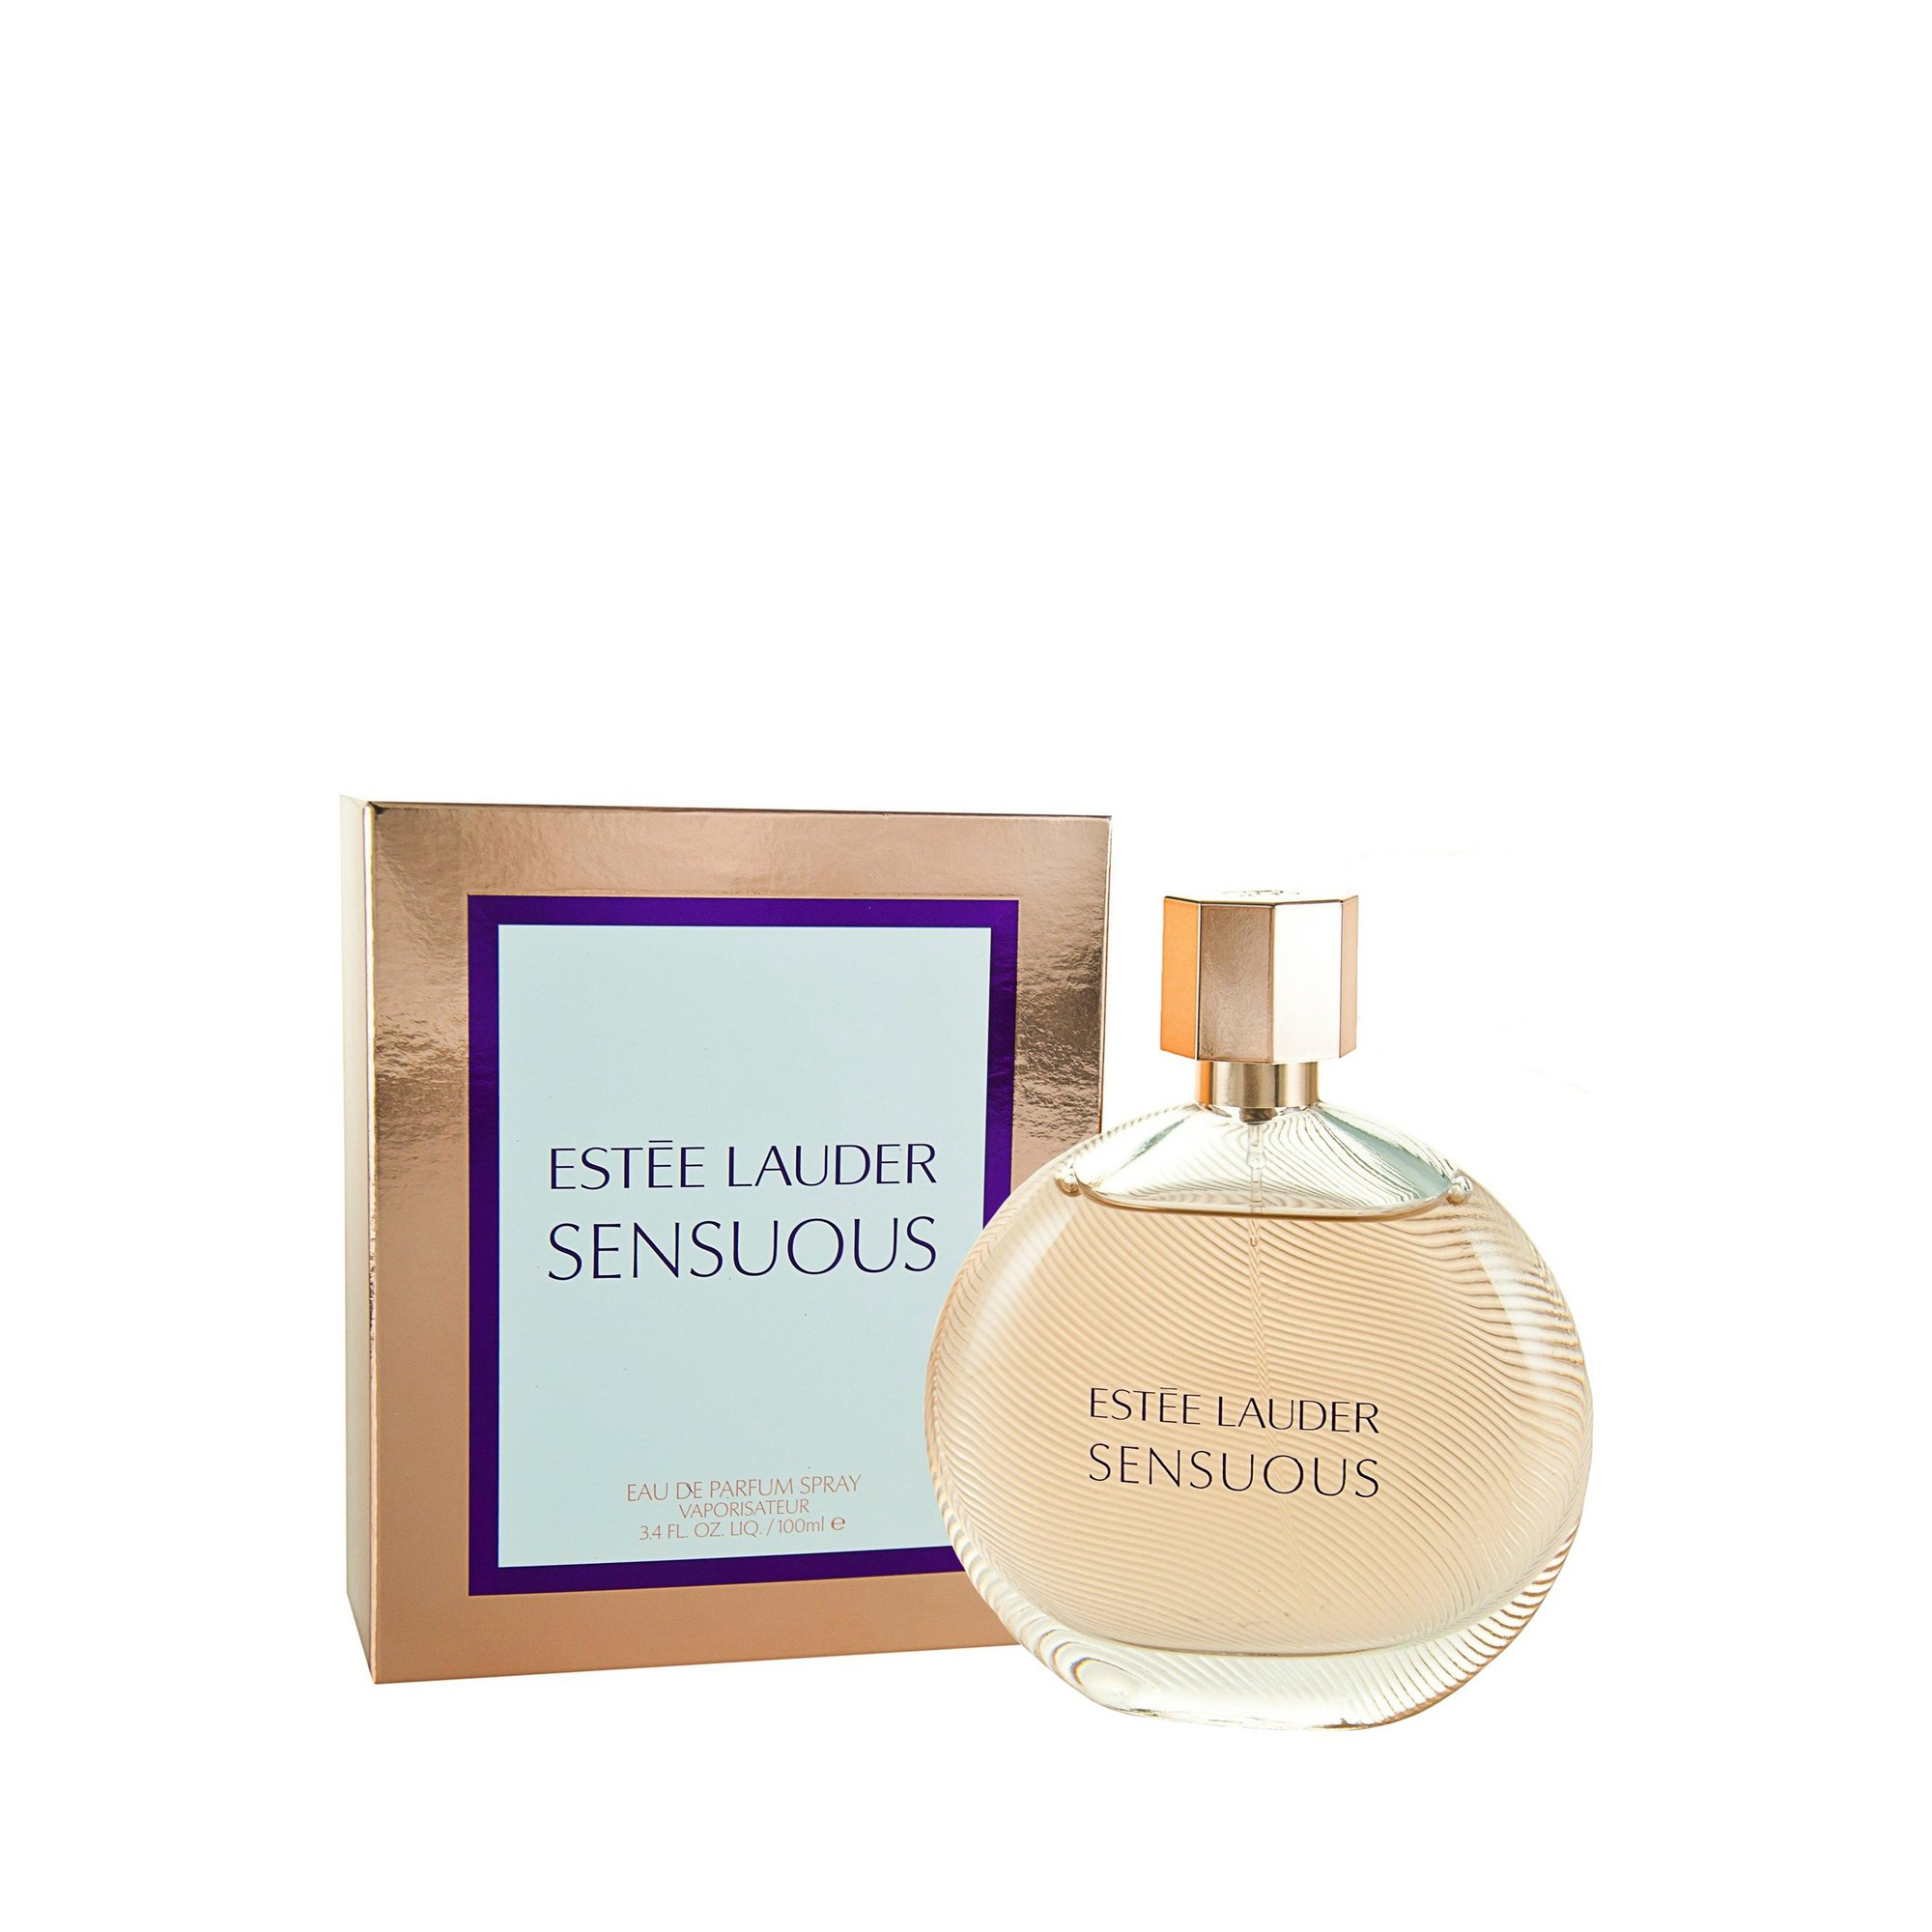 Image of Estee Lauder Sensuous 100ml EDP